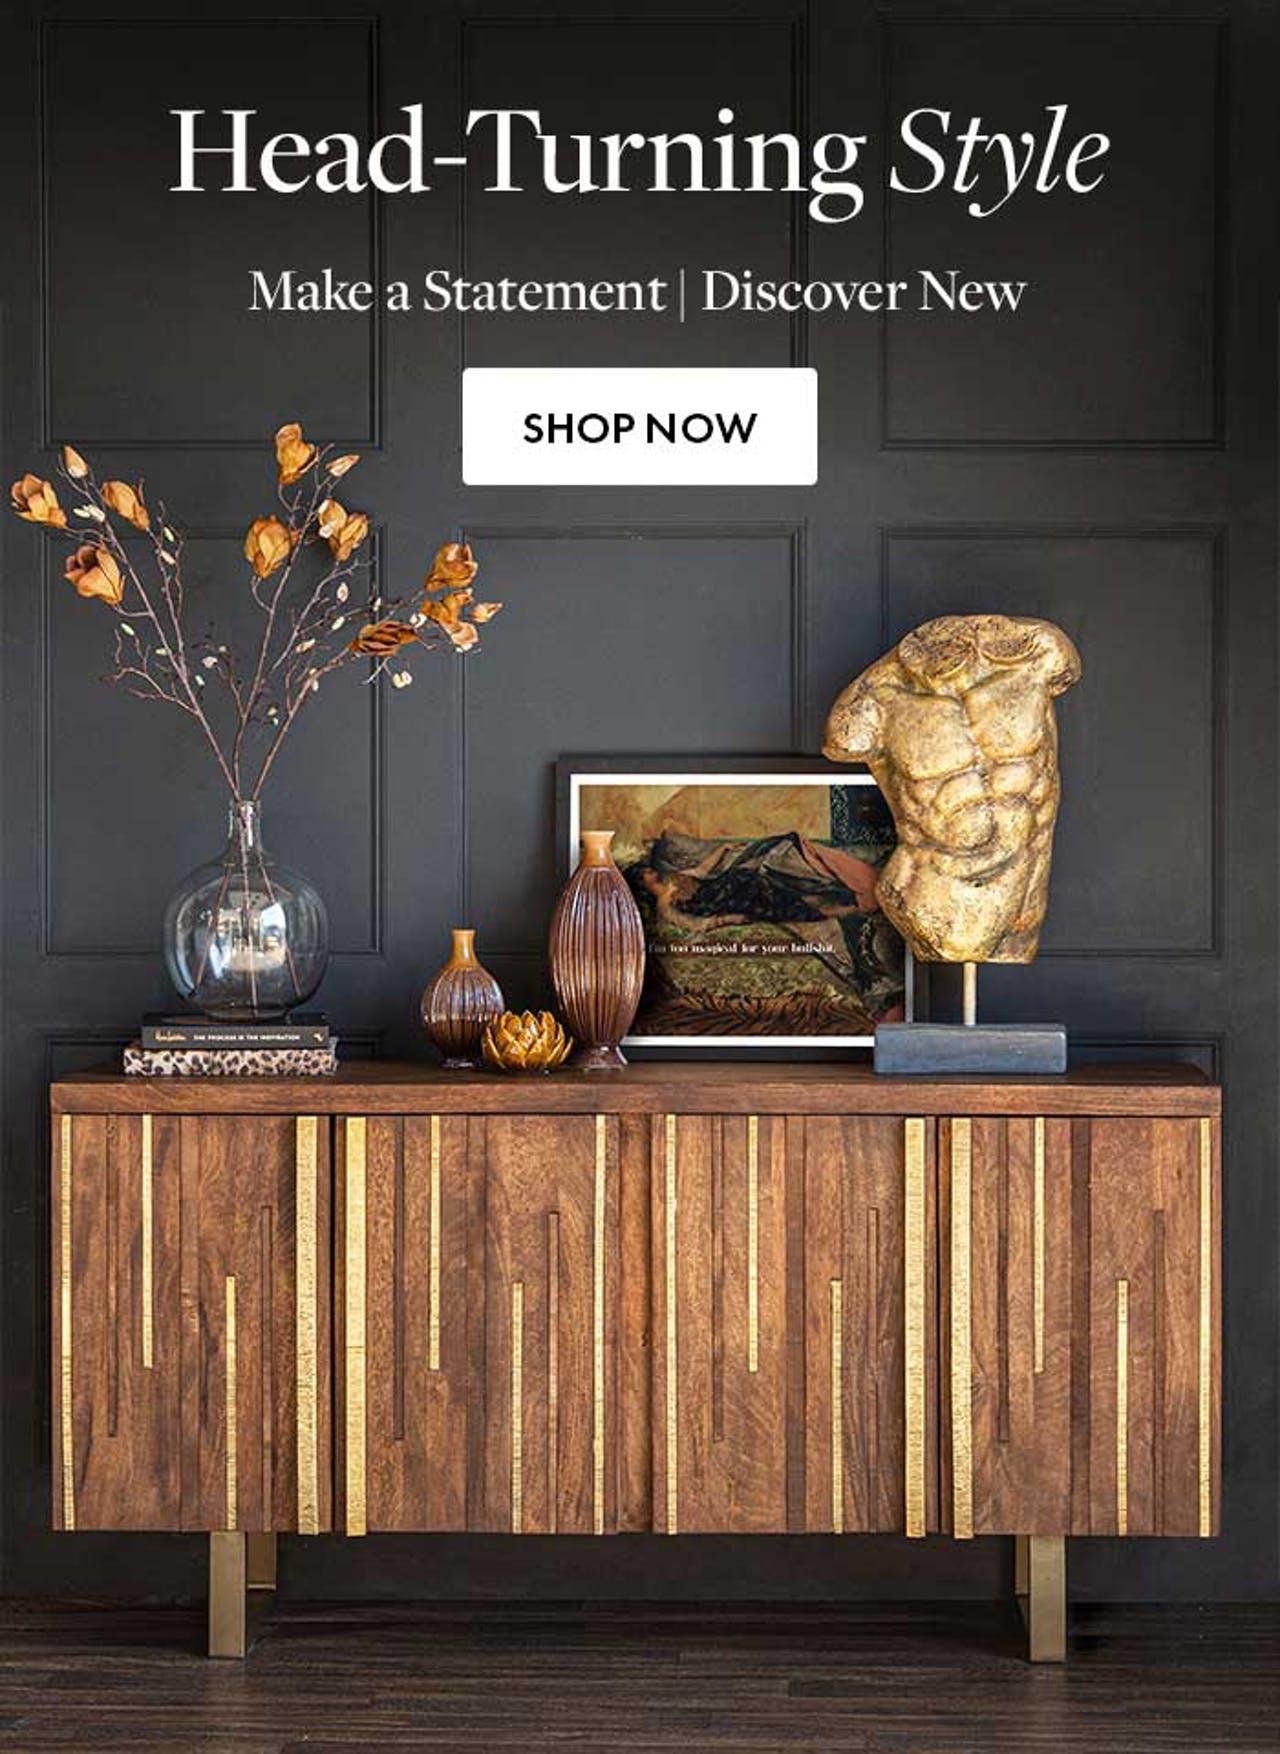 Wood and Brass sideboard cabinet with quirky ornaments and an art print